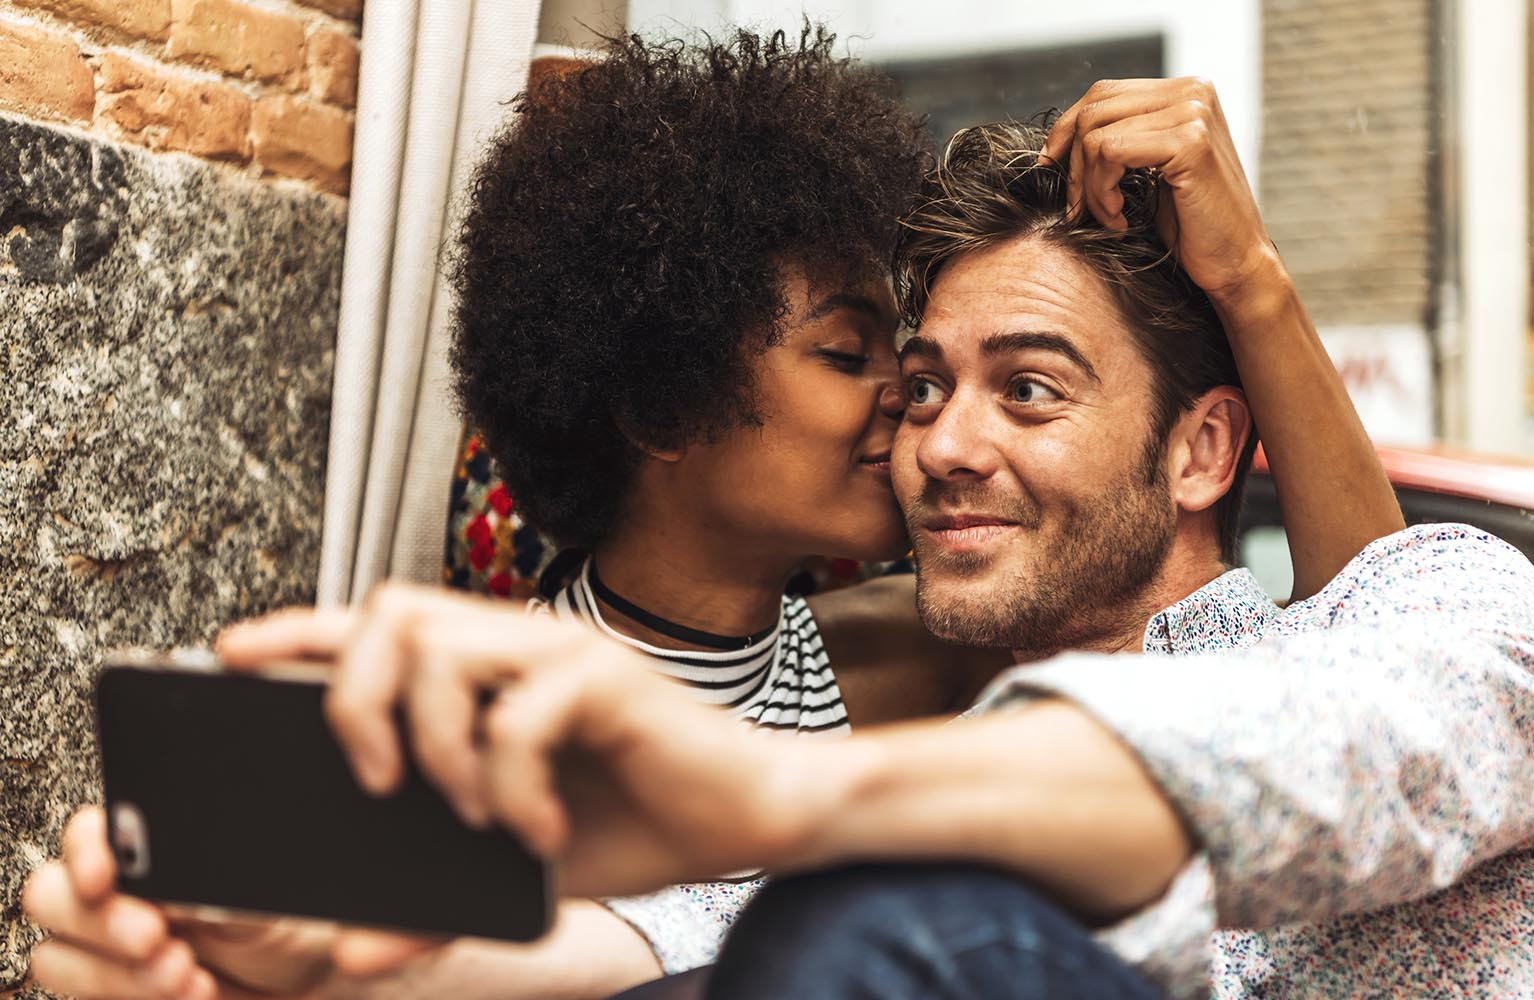 Woman kissing man while taking selfie